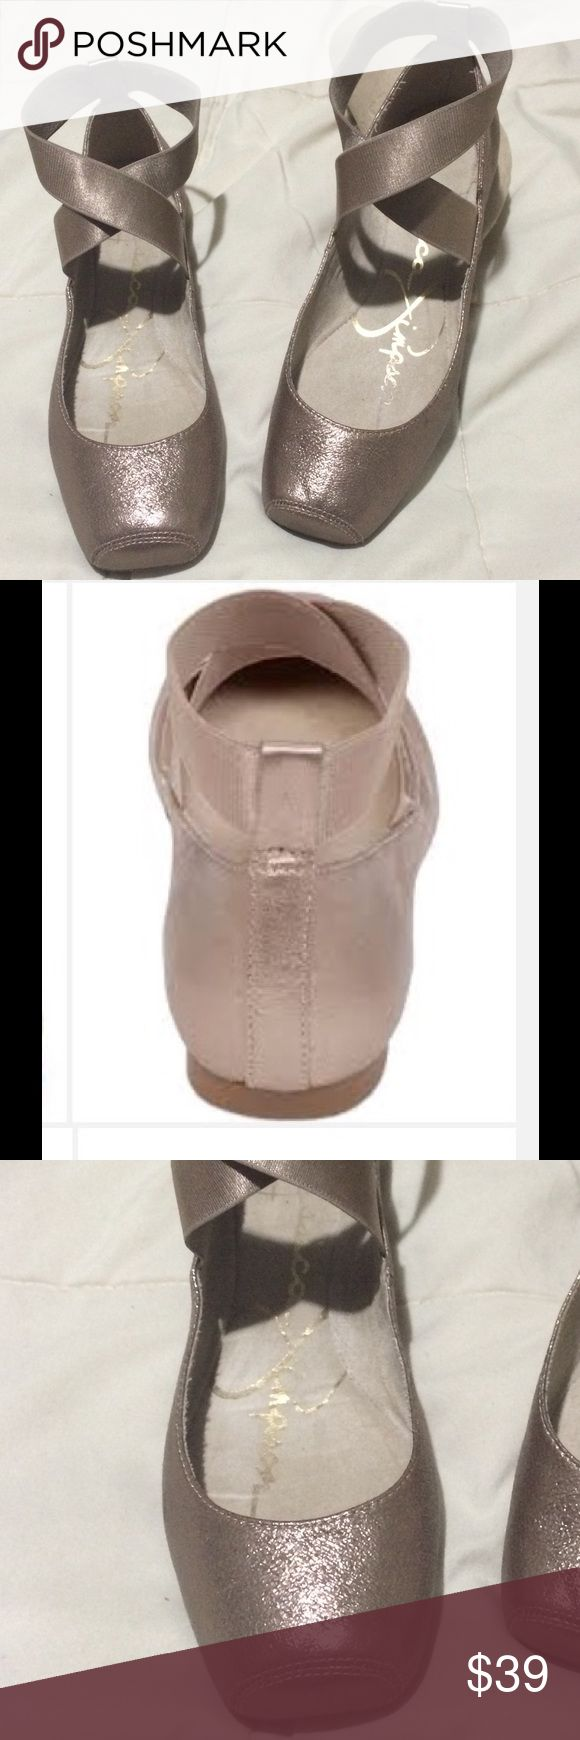 FREE SHIPPING FOR 30 min J S Mandalaye Gold (Rare) Jessica Simpson Mandalaye Nude Gold (barely worn) 🎀Embody all that is adorable about a ballerina slipper when you slide your feet into these Mandalaye Ballet flats. This Ultra Feminine style looks great with jeans or dresses alike!!  Leather uppers with boxed toe.  Easy slip-on construction with elastic ankle silky straps. Man-made lining. Cushioned man-made footbed. Jessica Simpson Shoes Flats & Loafers